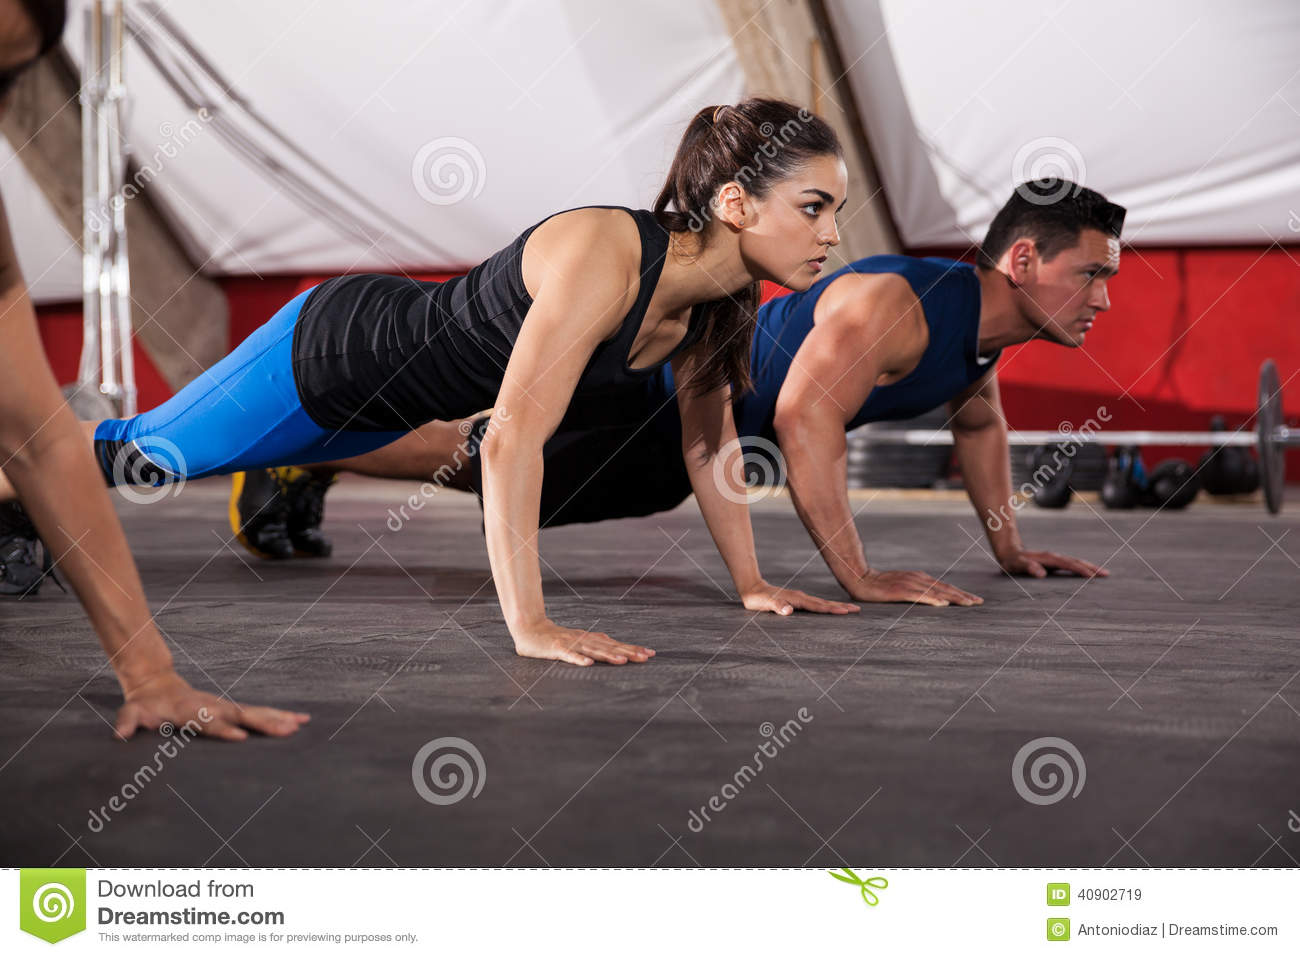 Focused on her push ups